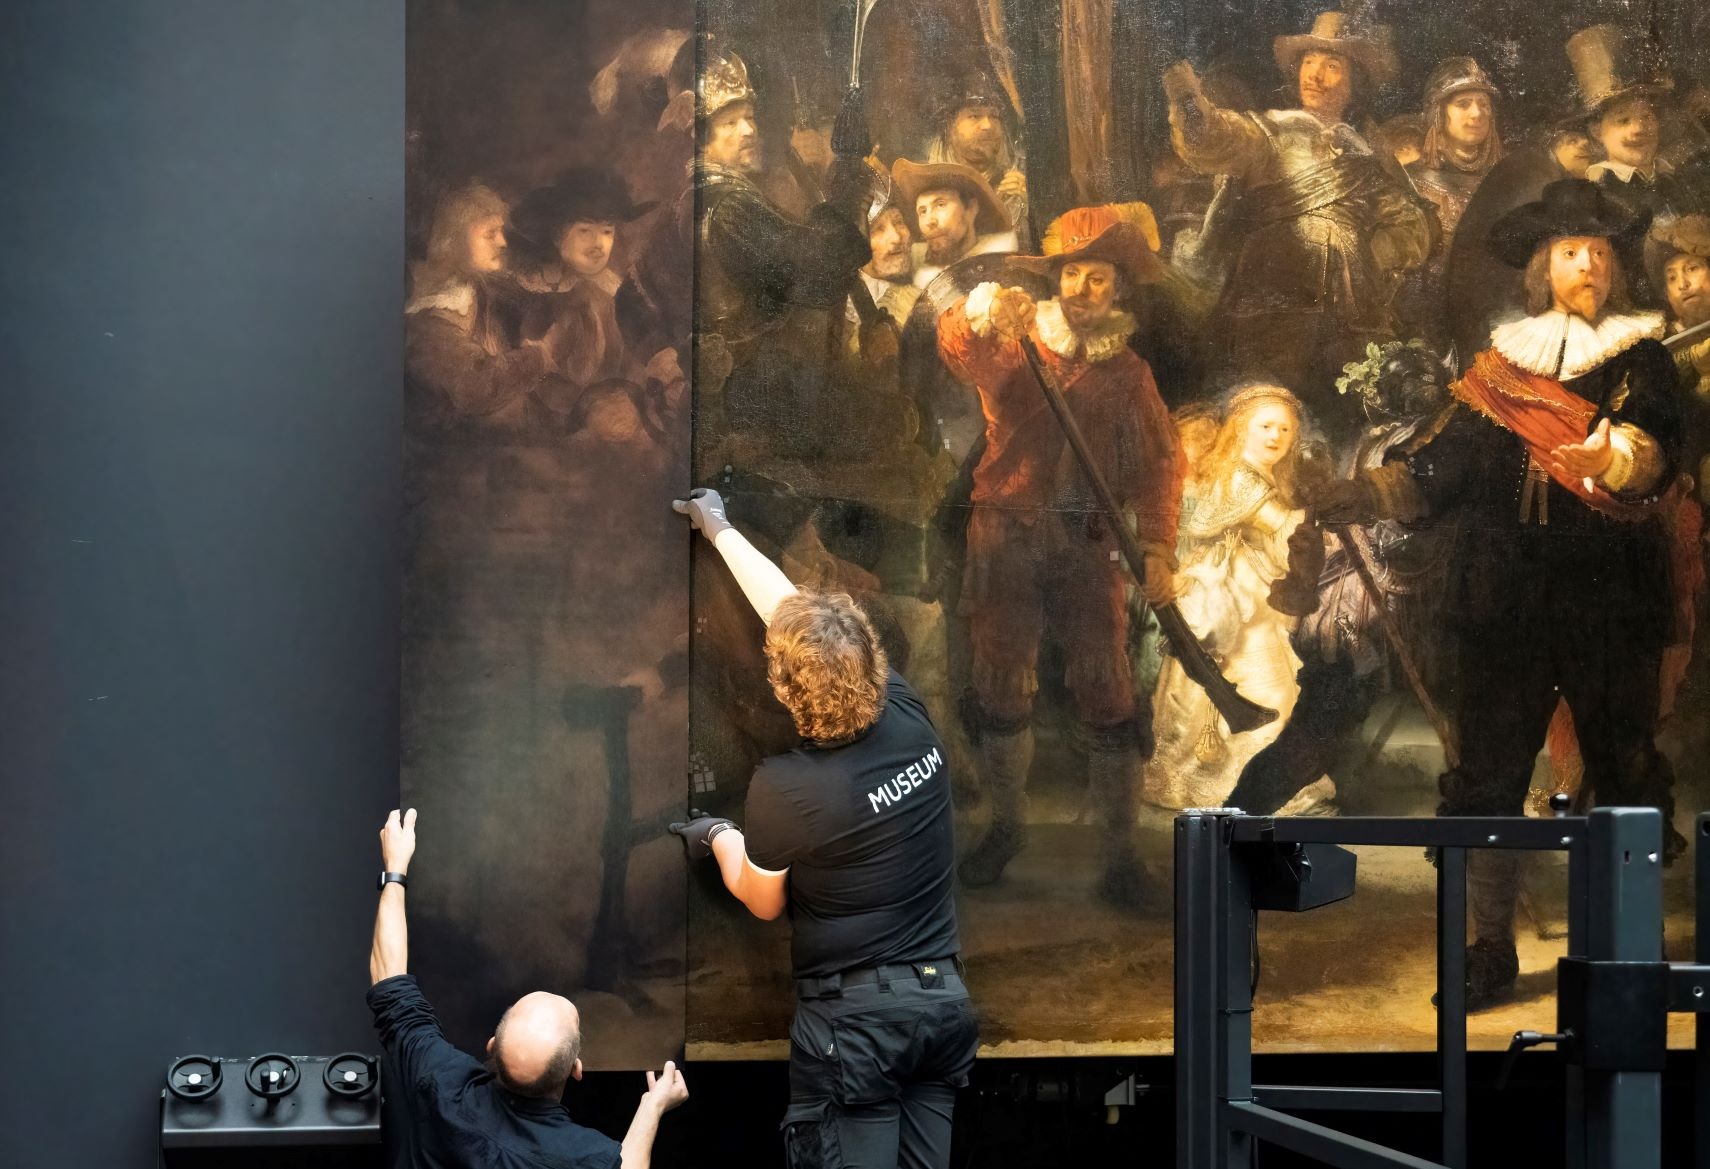 Missing bits of Rembrandt's The Night Watch are recreated by AI - DutchNews.nl